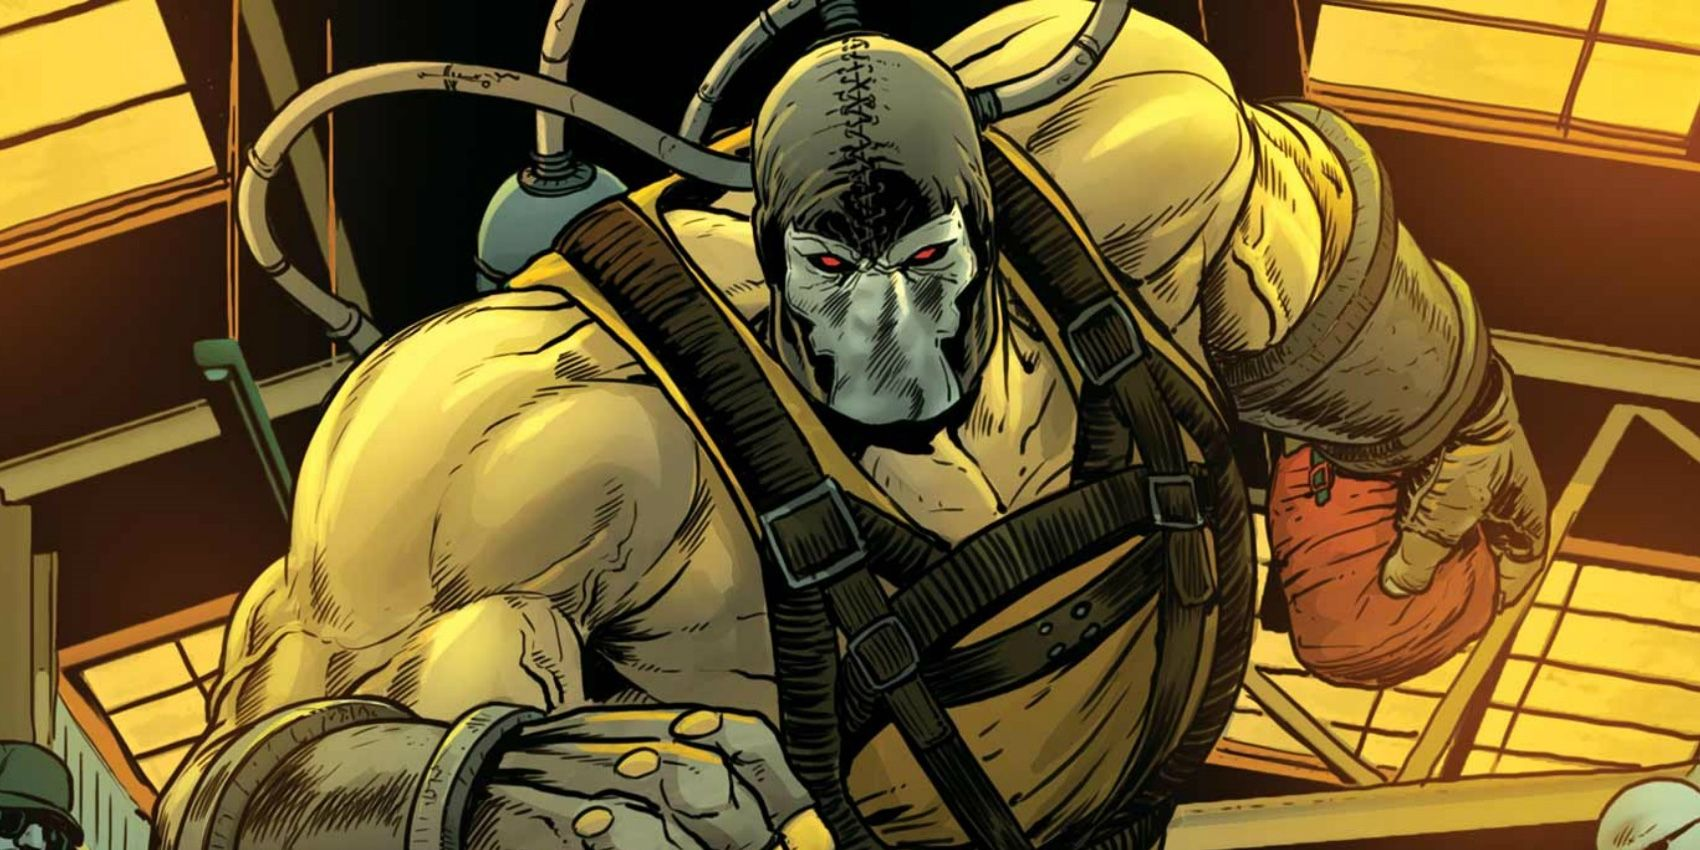 Dave Bautista Would Love to Play Bane in the DCEU